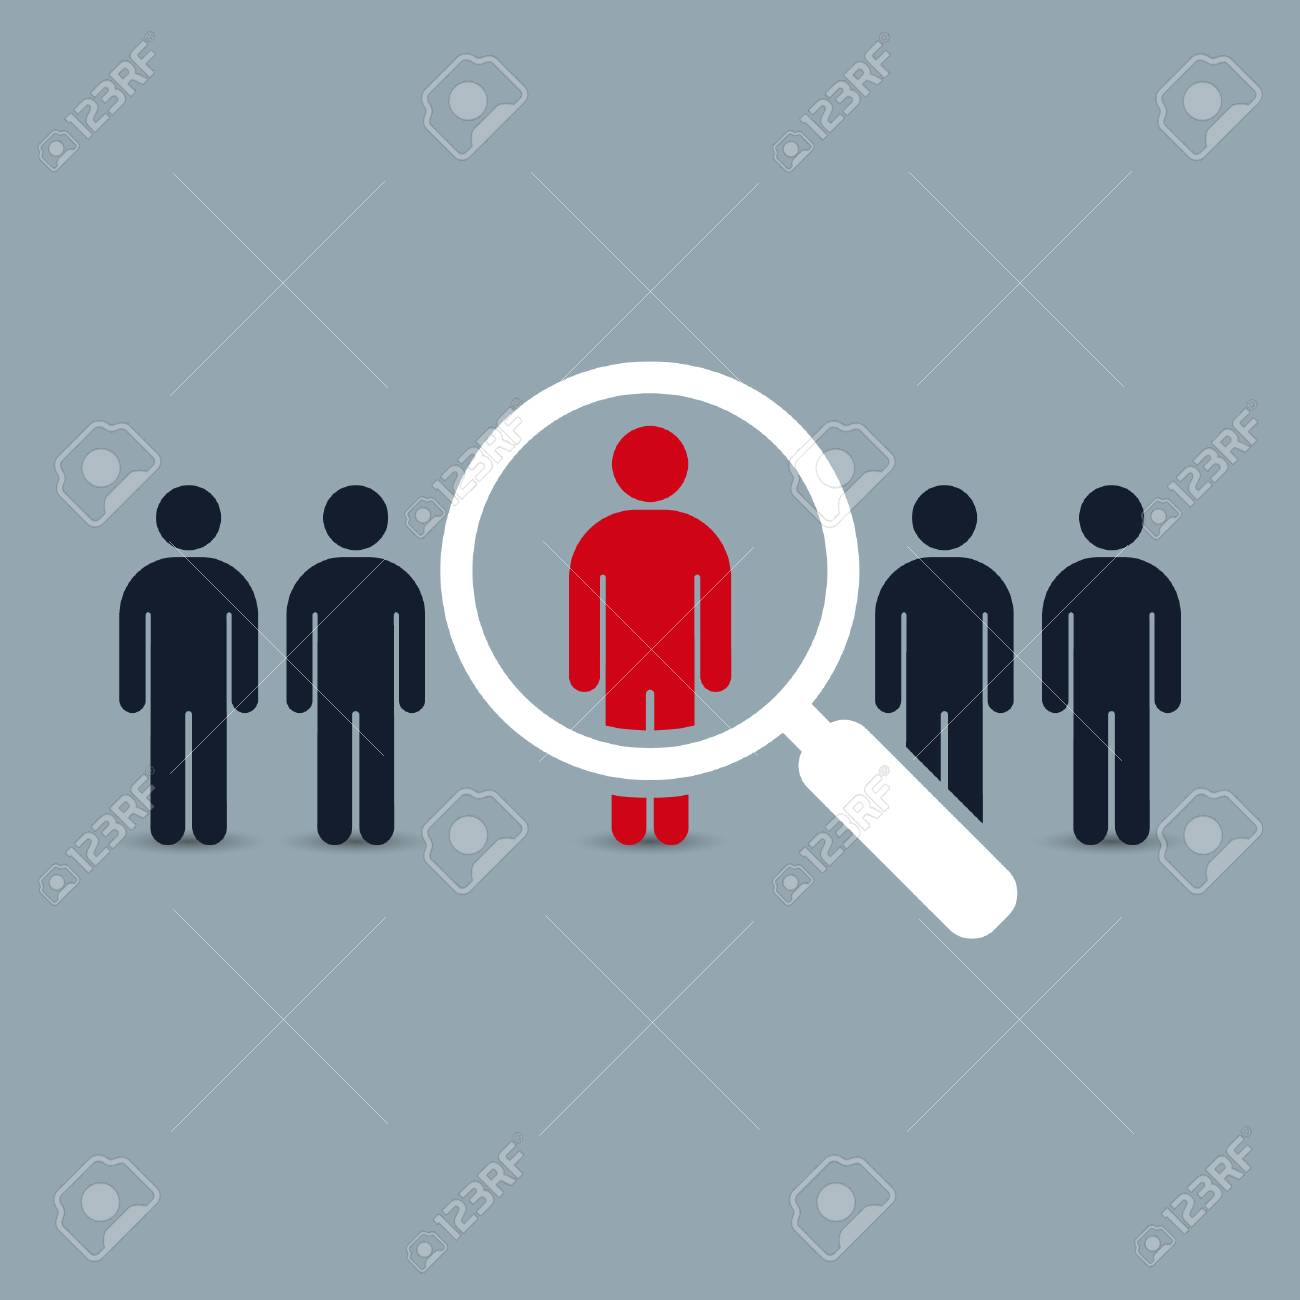 Superior Search For Employees And Job, Business, Human Resource. Looking  For Talent.